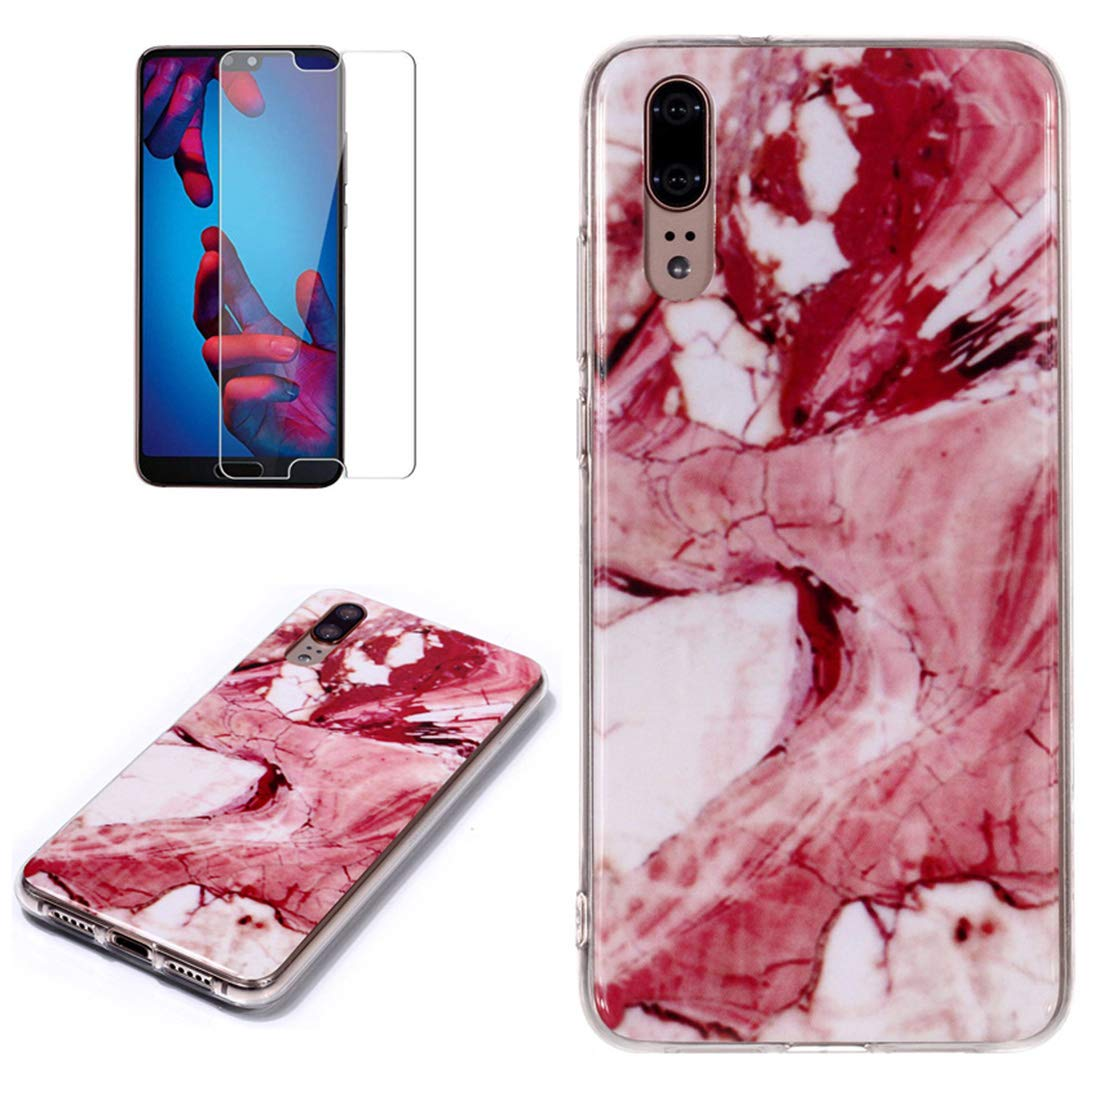 for Huawei P20 Pro Marble Case with Screen Protector,Unique Pattern Design Skin Ultra Thin Slim Fit Soft Gel Silicone Case,QFFUN Shockproof Anti-Scratch Protective Back Cover - Red Texture by QFFUN (Image #1)